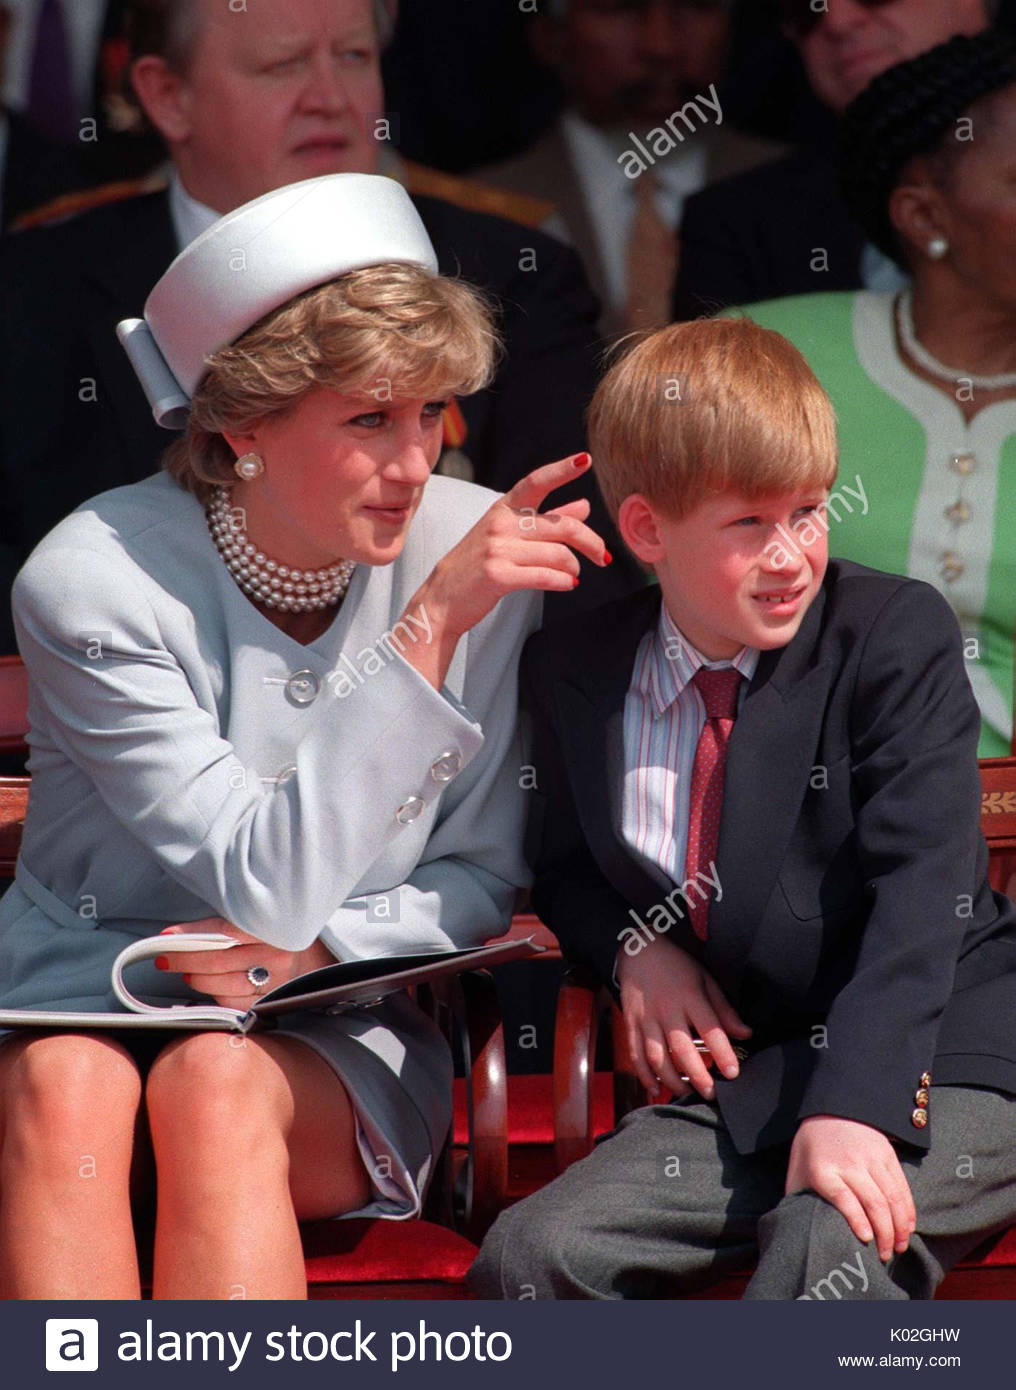 """File photo dated 07/05/95 of Diana, Princess of Wales with her son Prince Harry. Diana, Princess of Wales was a woman whose warmth, compassion and empathy for those she met earned her the description the """"people's princess"""". - Stock Image"""